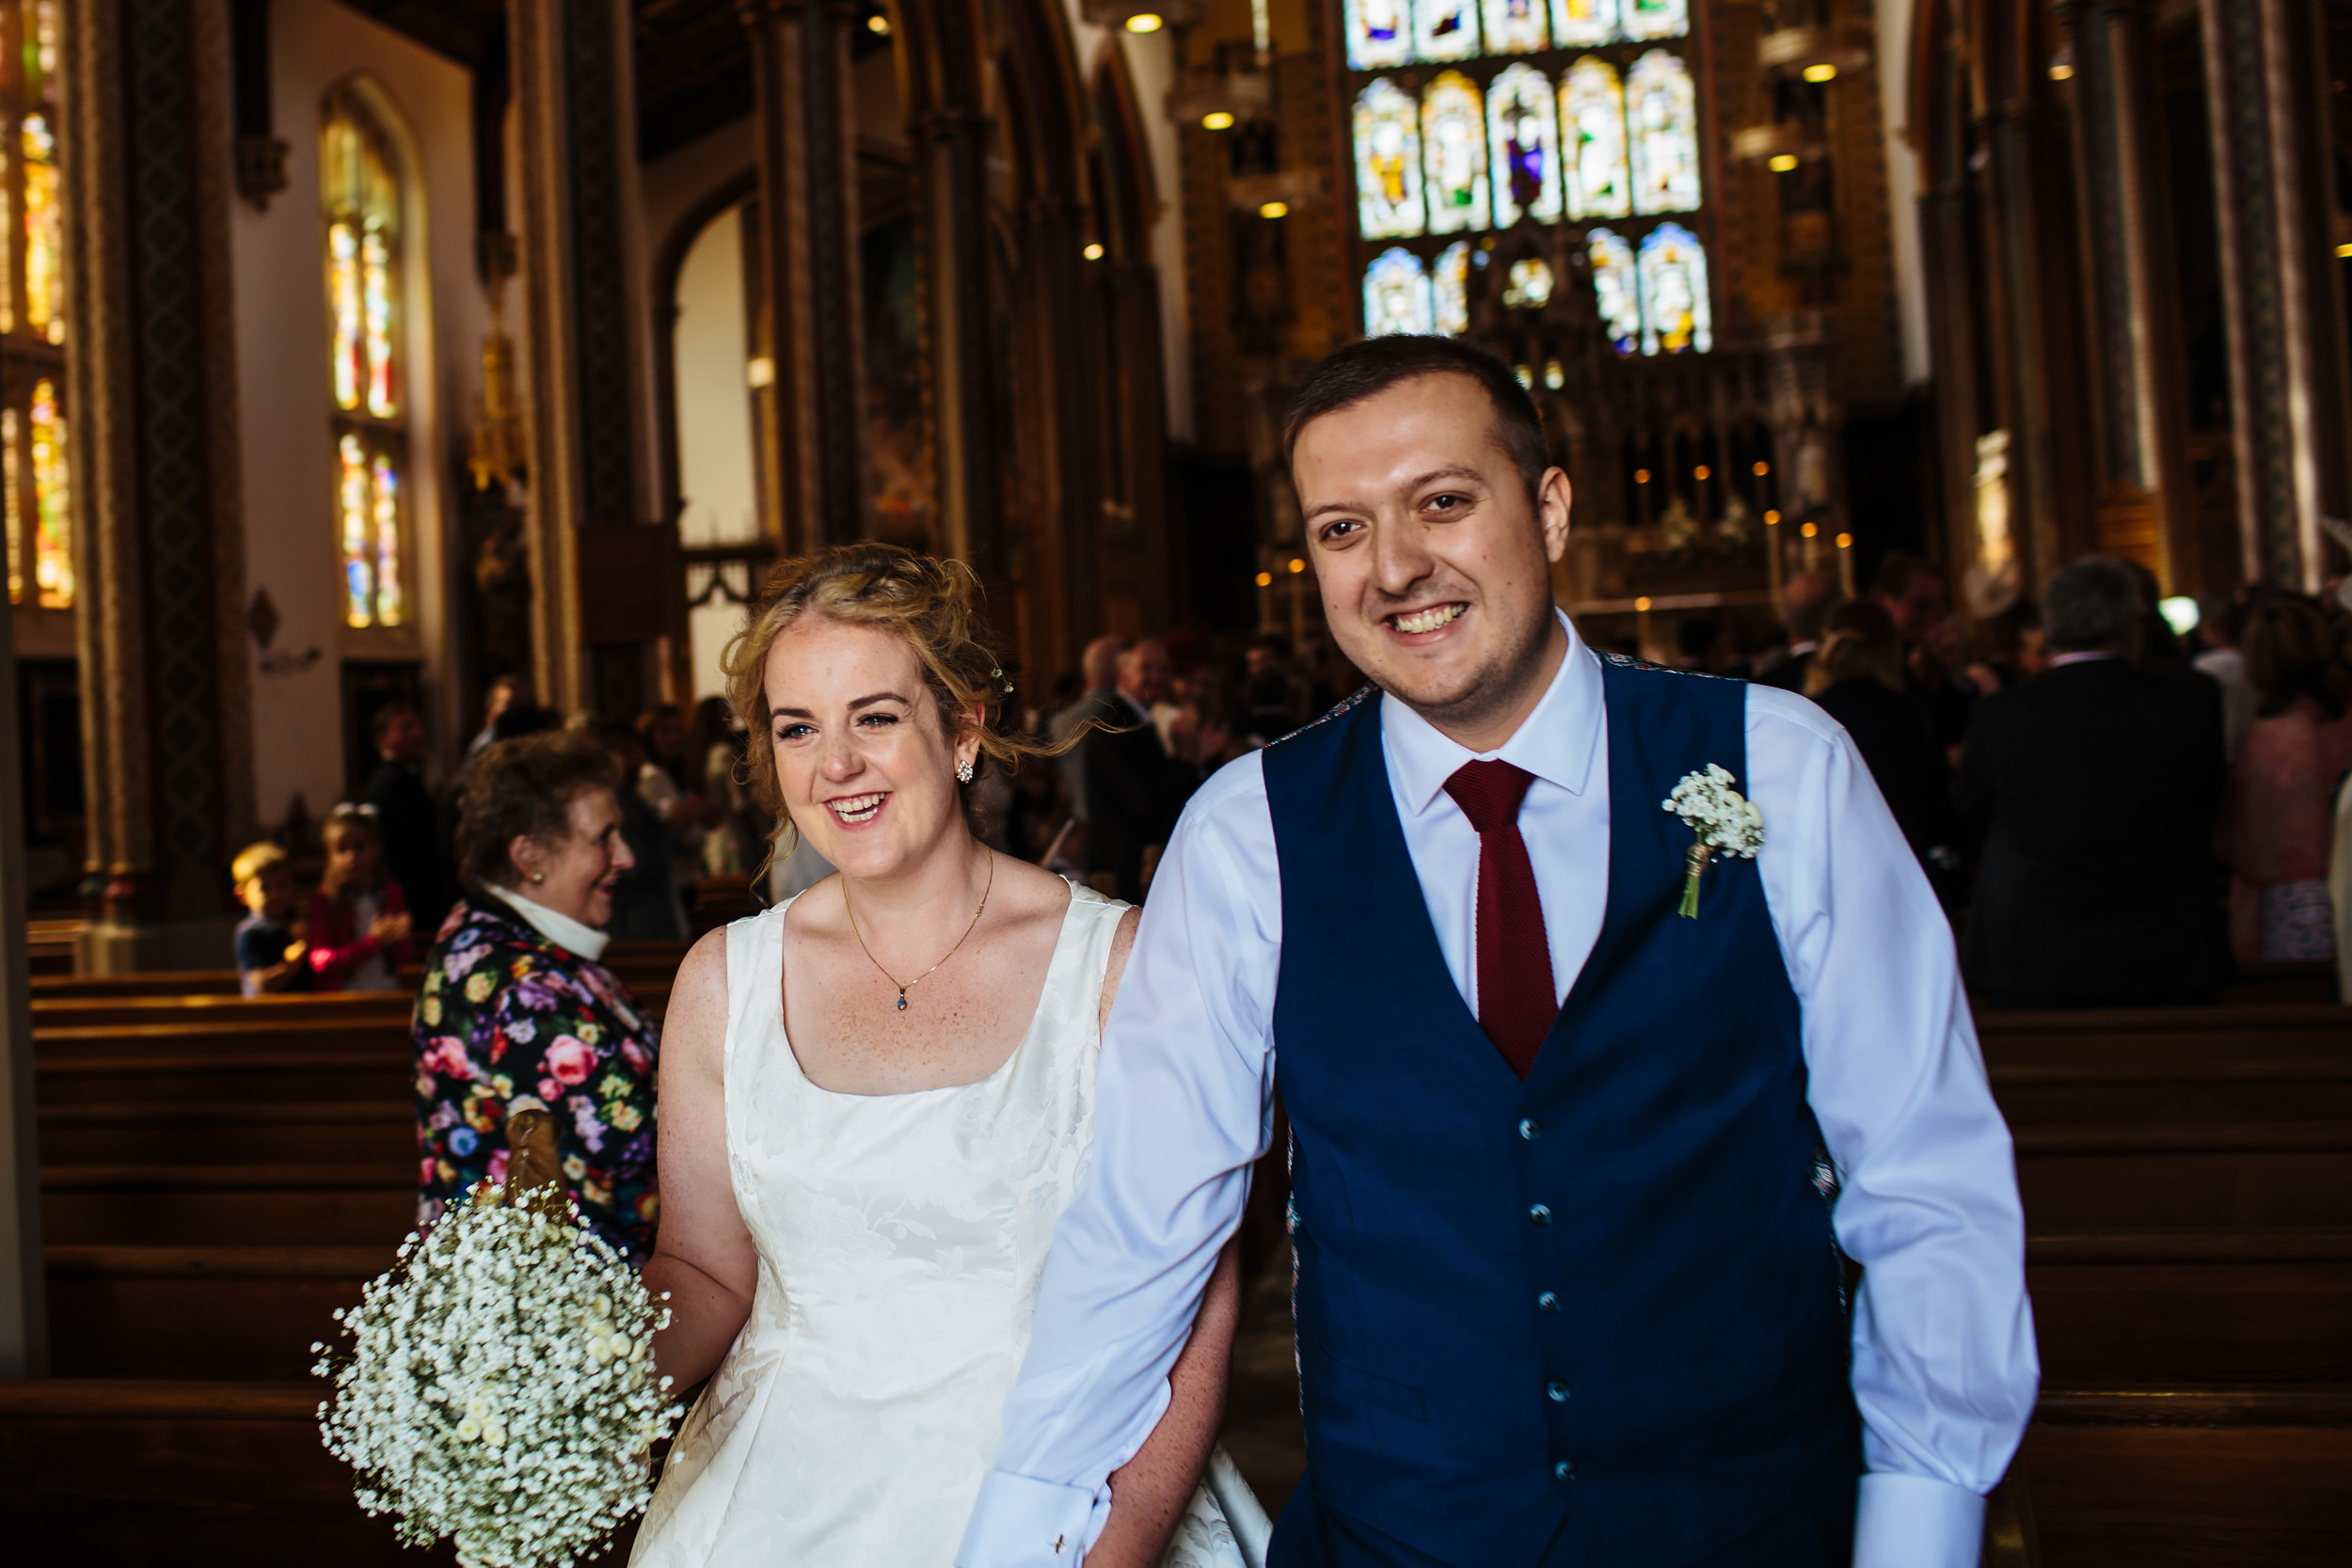 Bride and groom walking down the aisle at their wedding in Lancashire